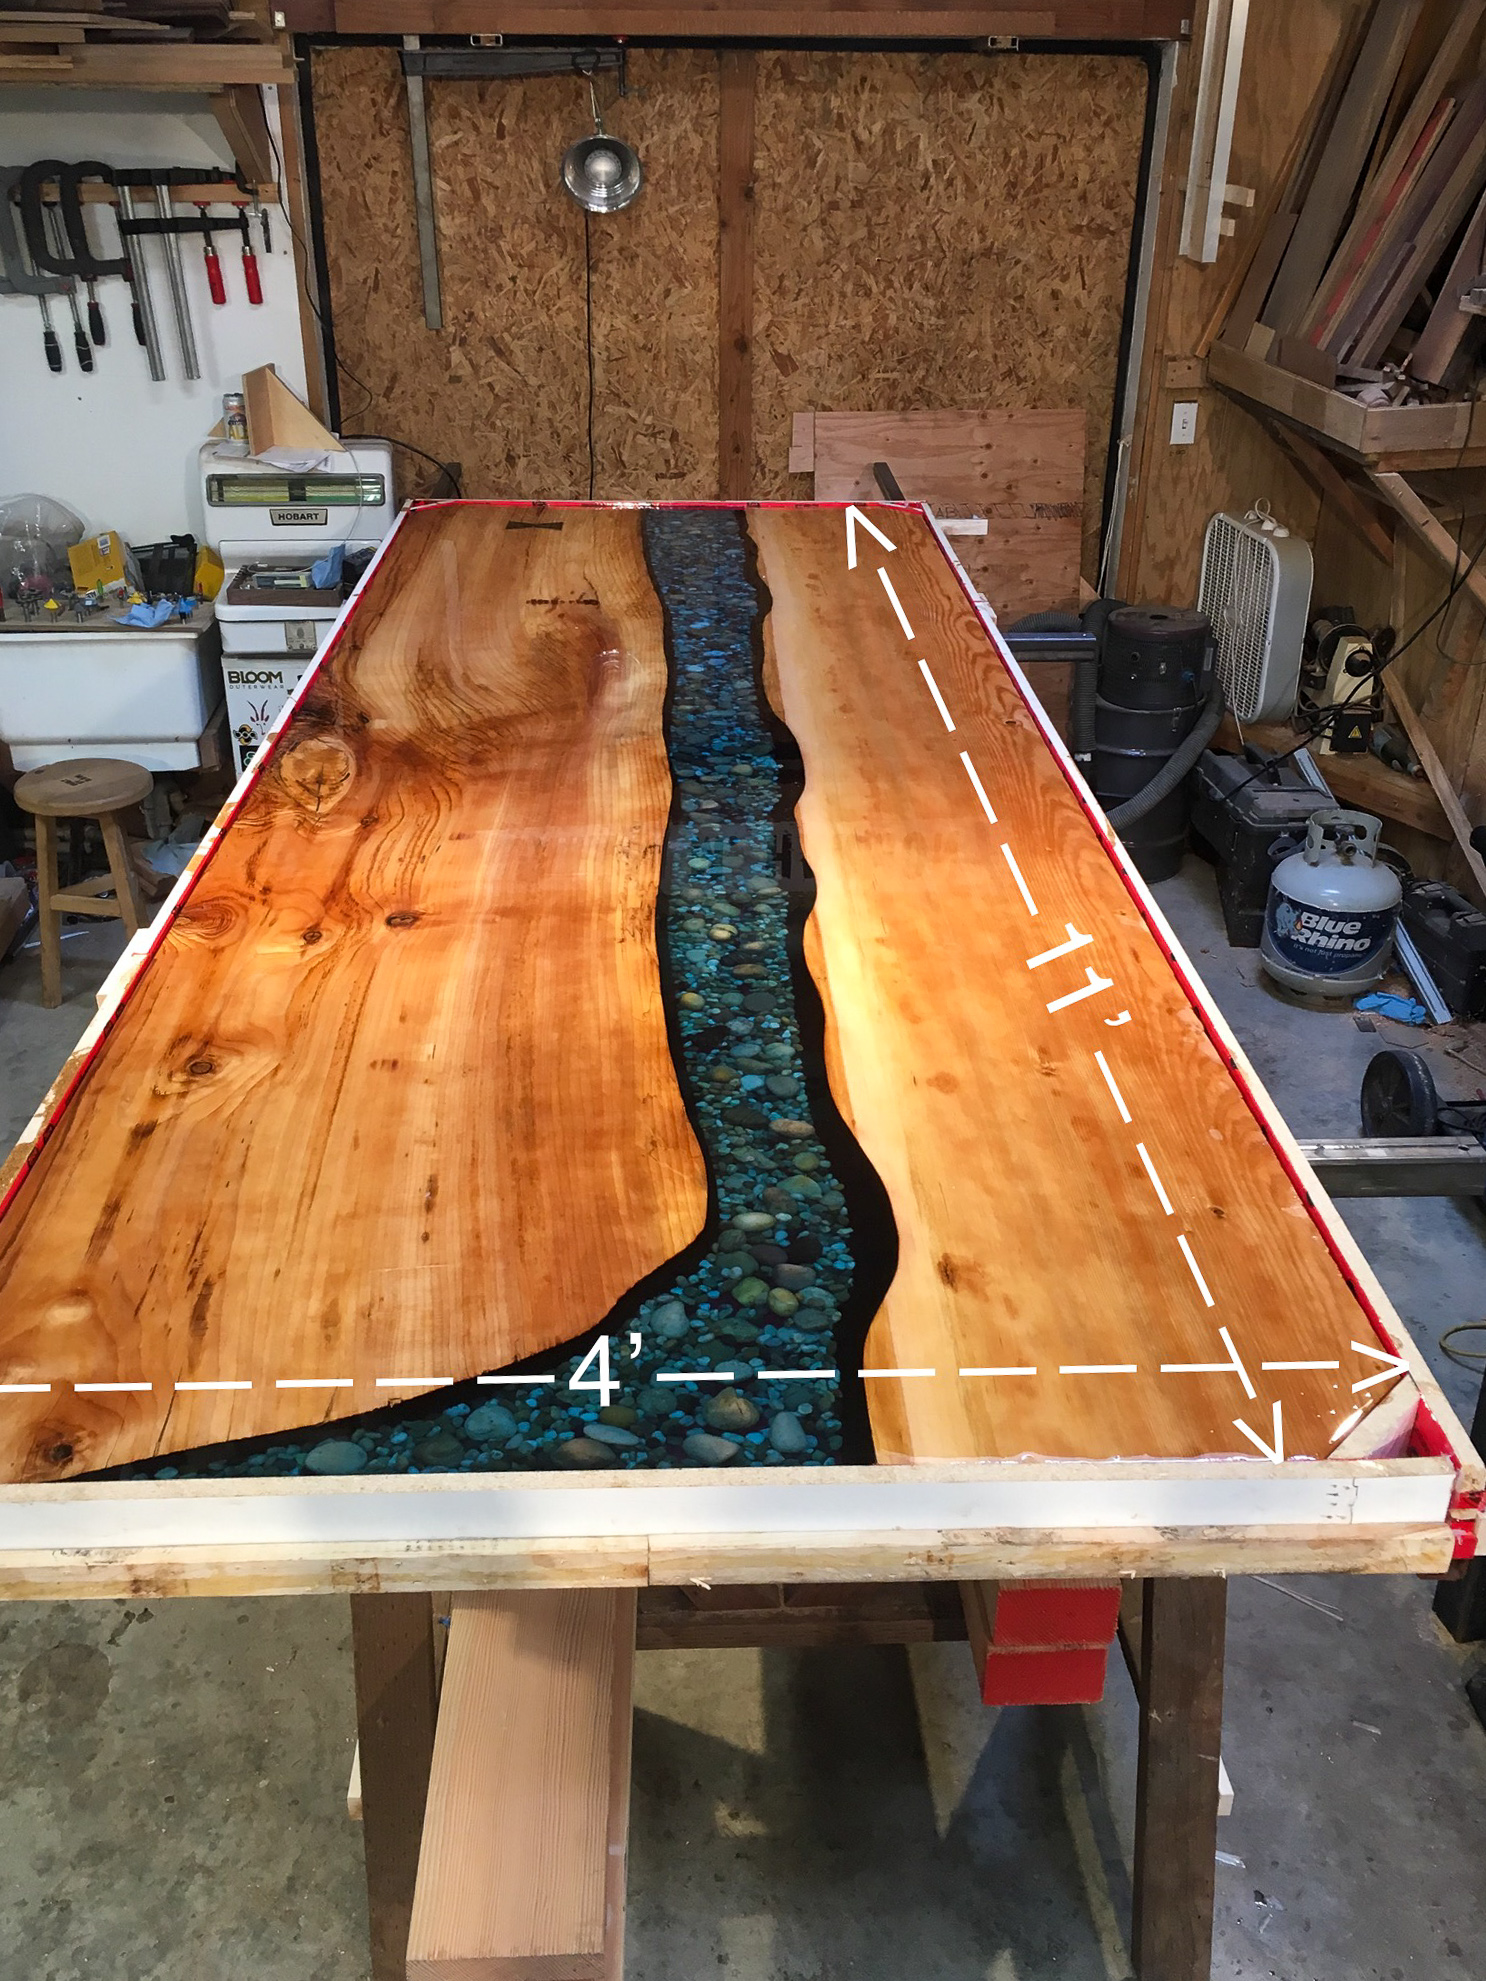 epoxy tips and tricks - builtben woodworking